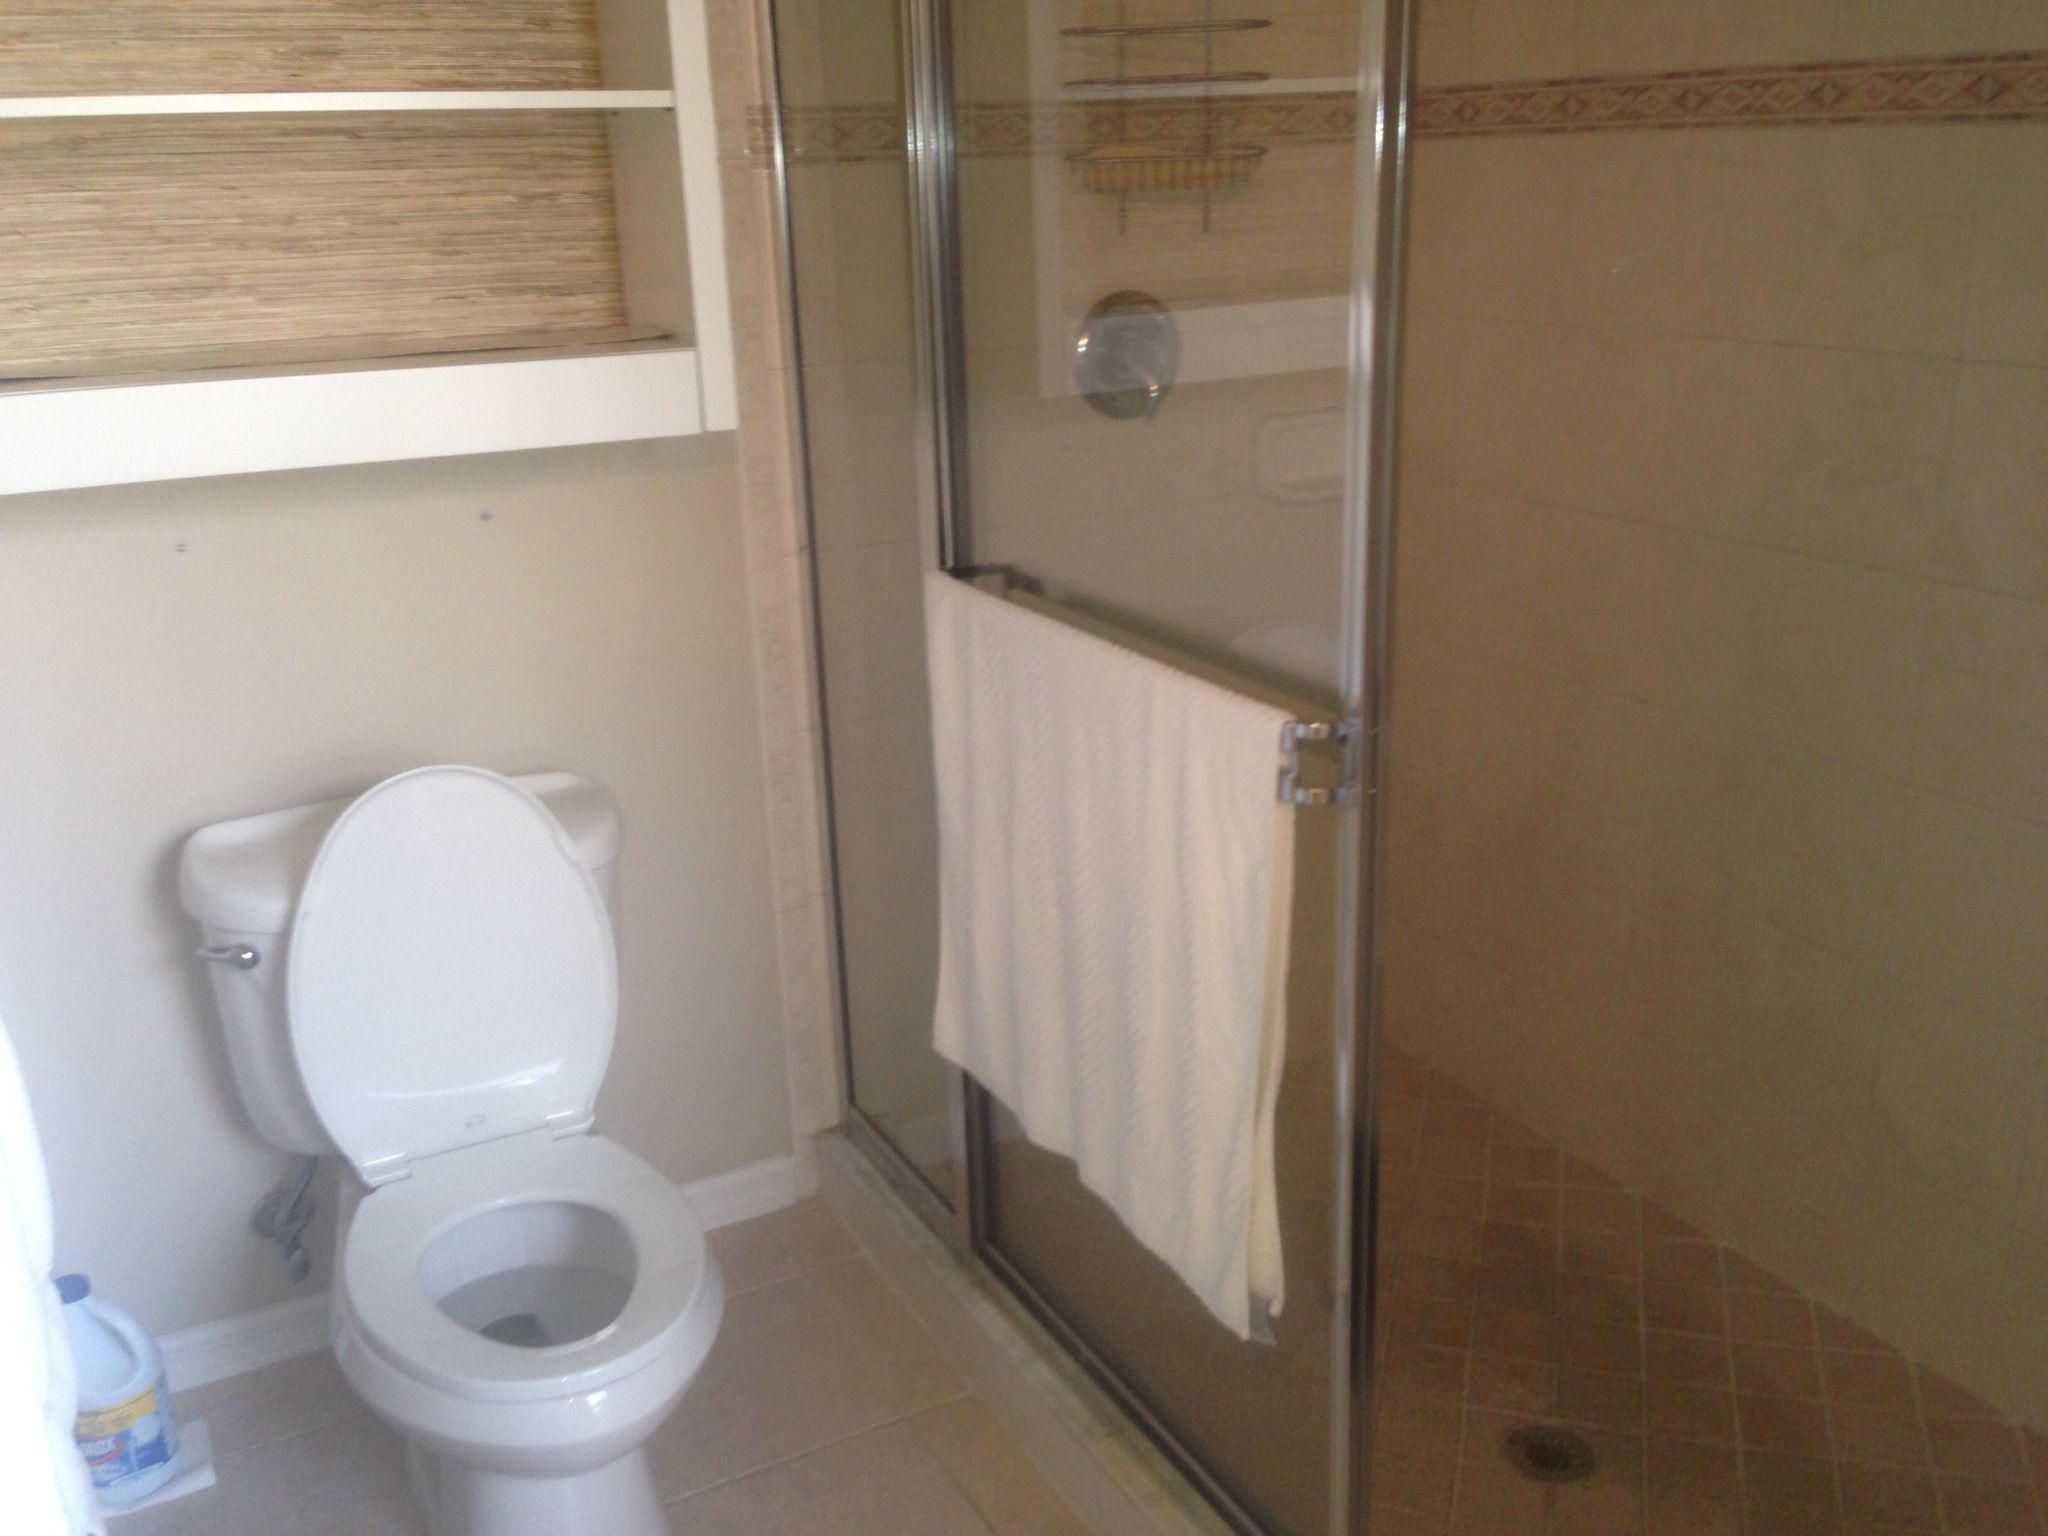 Cedar Hammock Bathroom Remodel Olde Florida Contracting Inc - Bathroom fixtures naples fl